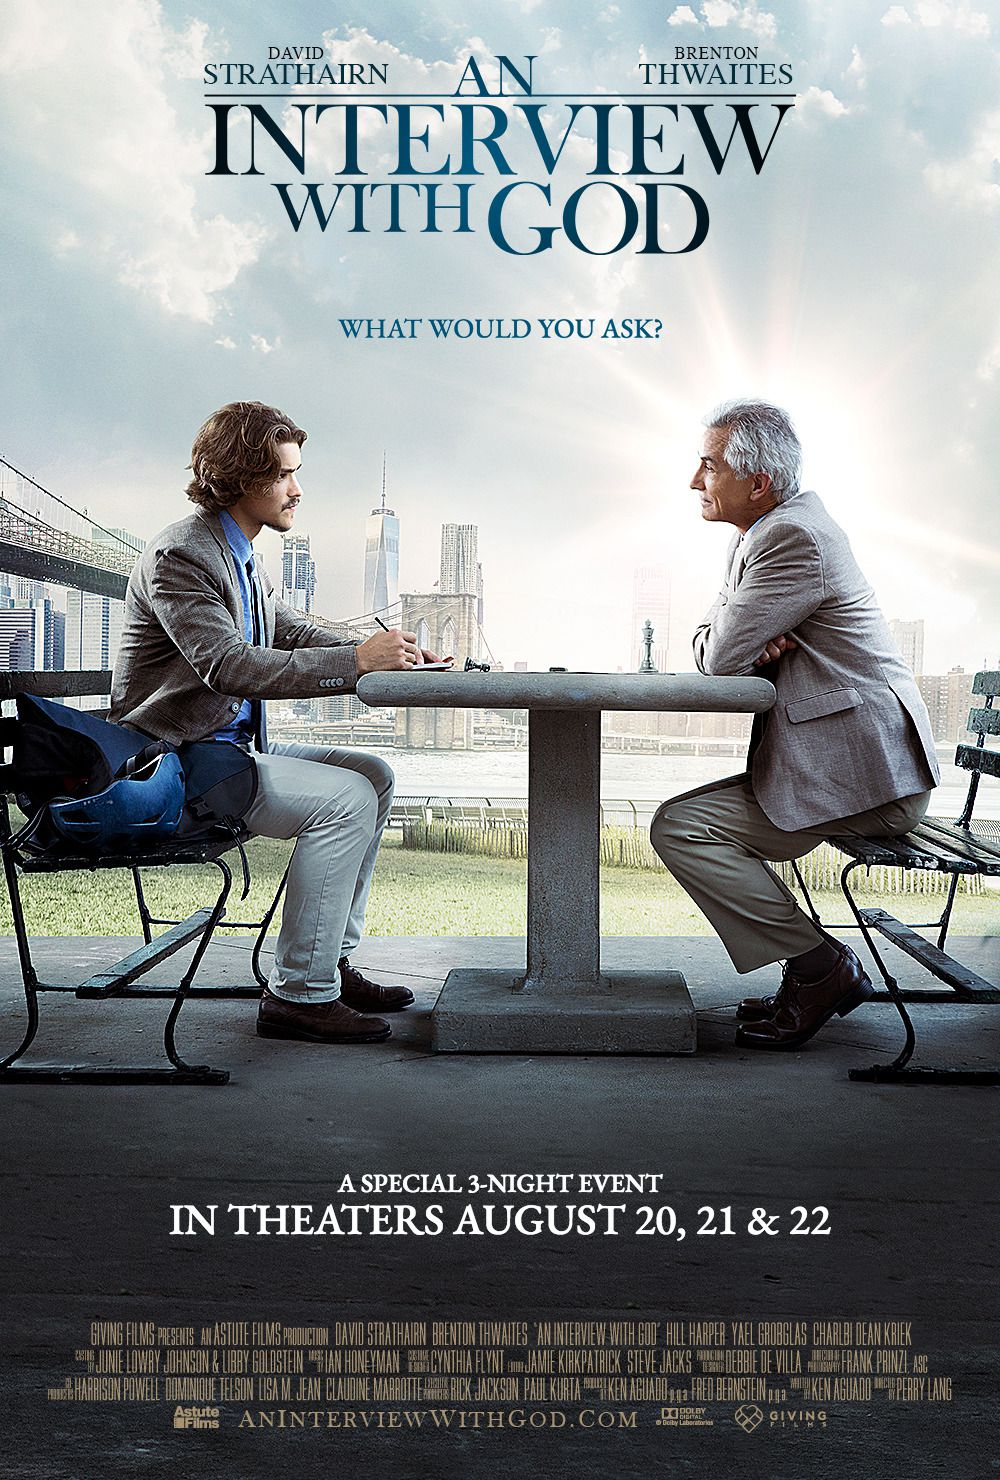 An Interview with God (2018) film poster